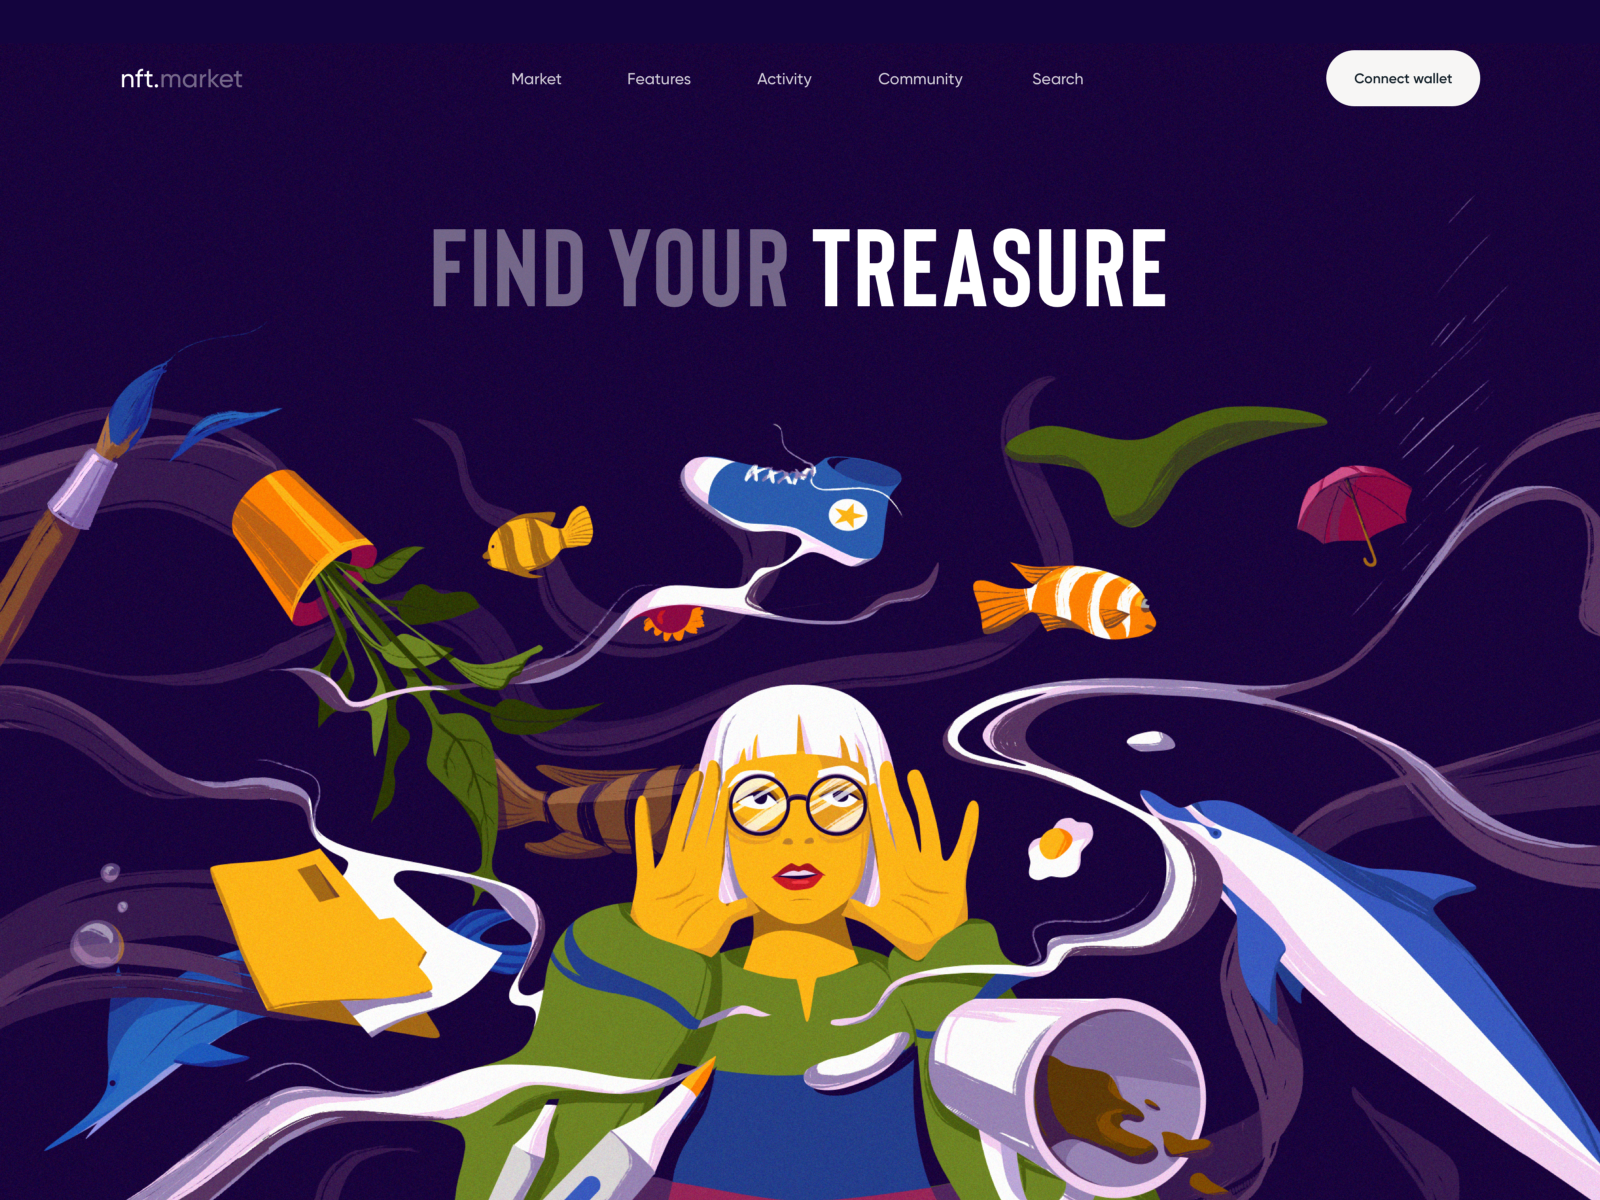 NFT Marketplace with Illustrations